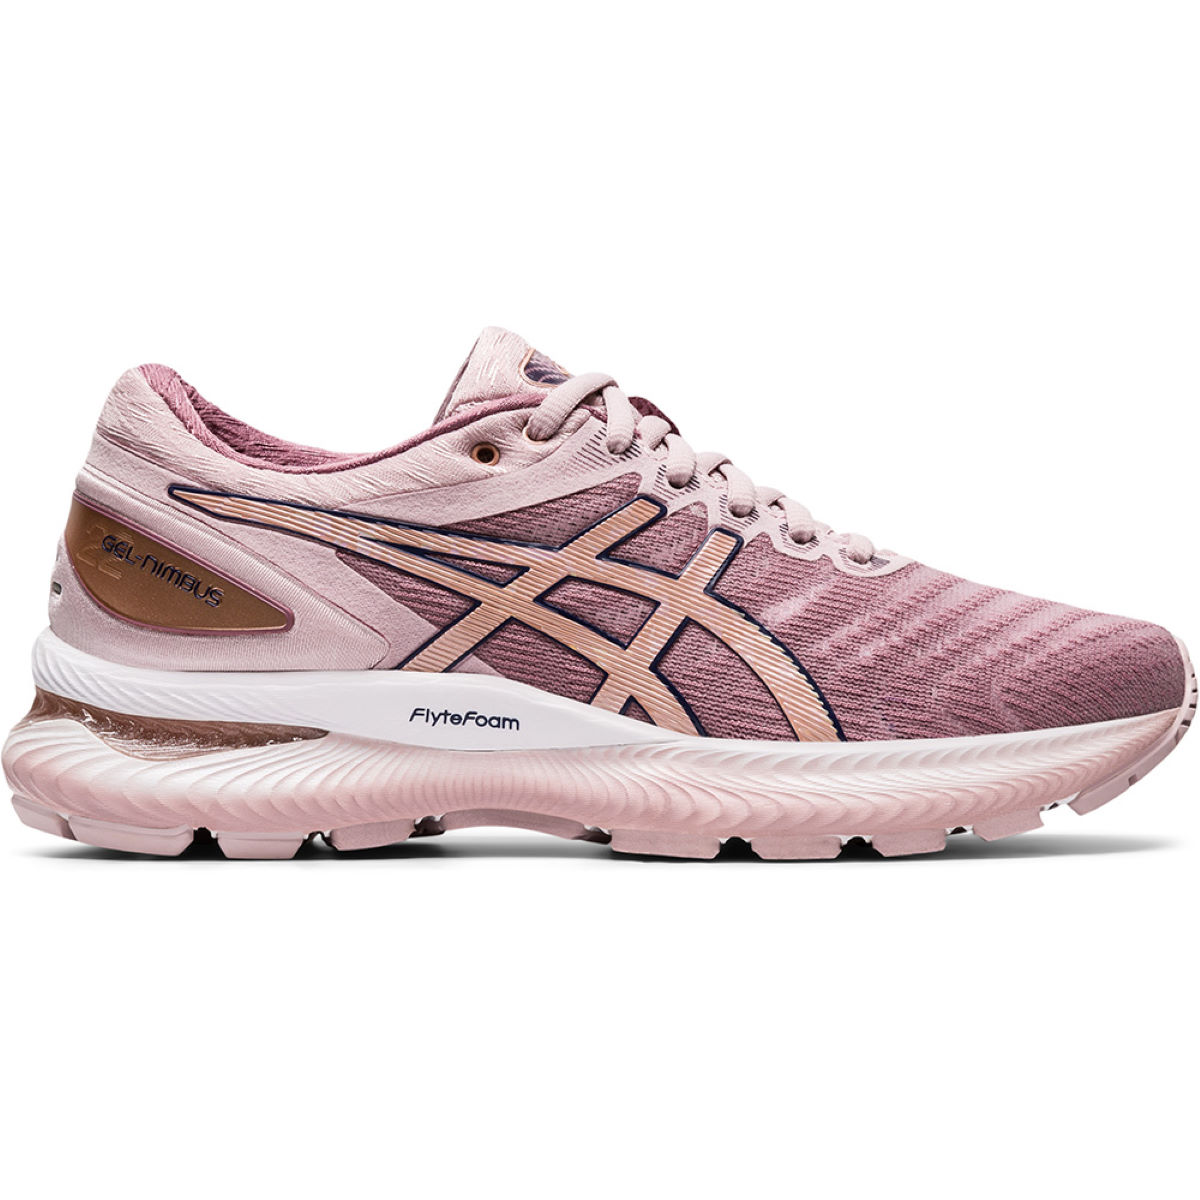 riega la flor Macadán estudiante universitario  Wiggle | Asics Women's GEL-Nimbus 22 Running Shoes | Running Shoes